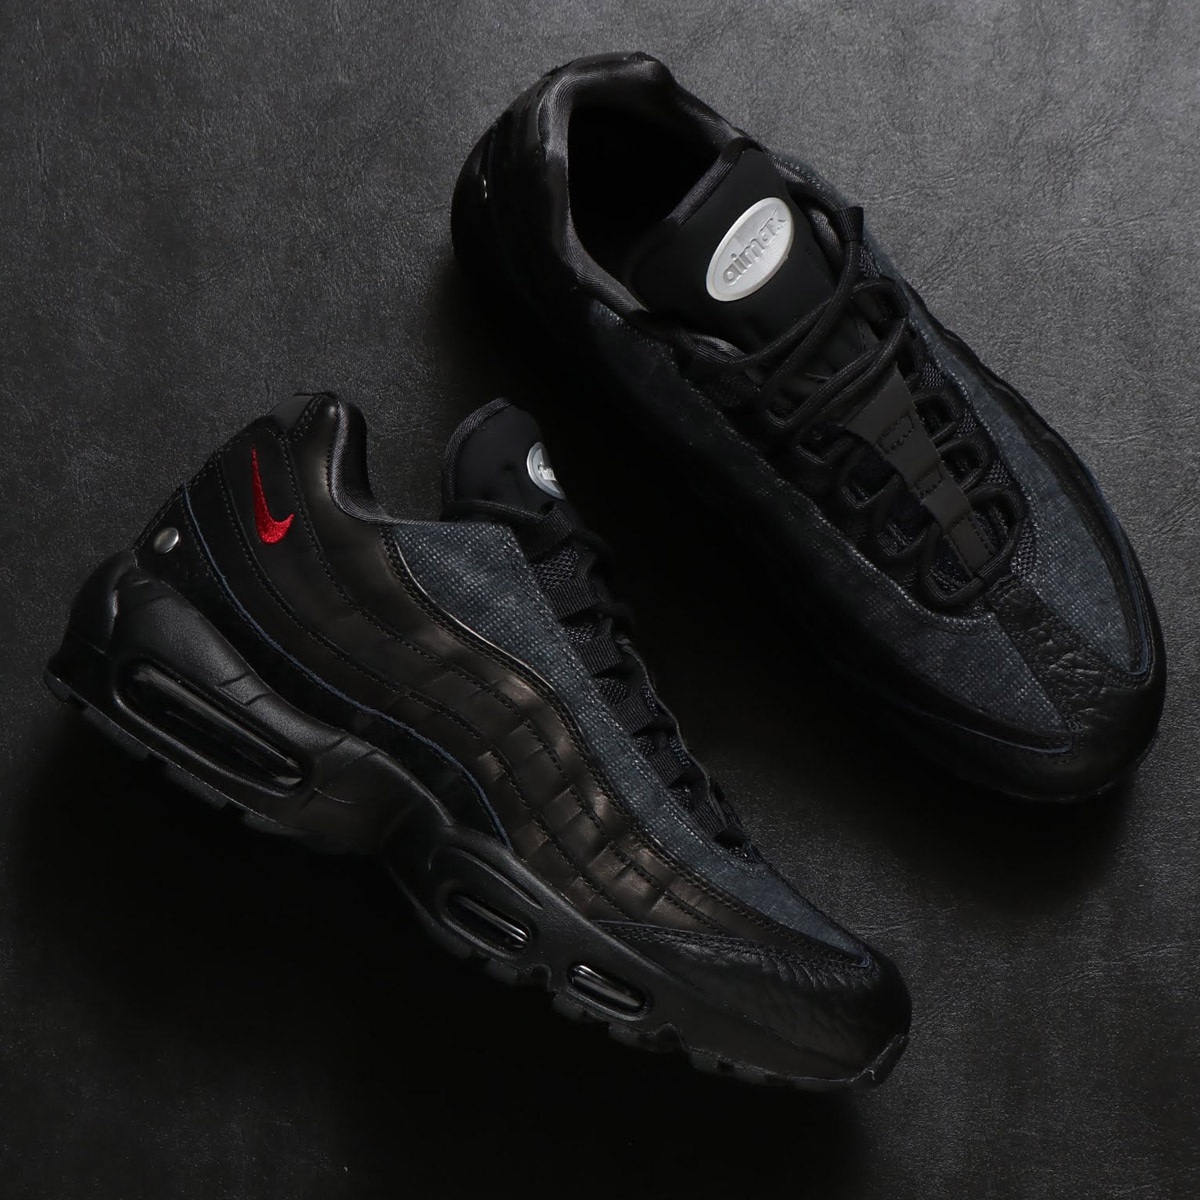 san francisco 1c501 9ff2b NIKE AIR MAX 95 NRG (Kie Ney AMAX 95 NRG) (BLACK TEAM RED-ANTHRACITE) 18AW-S